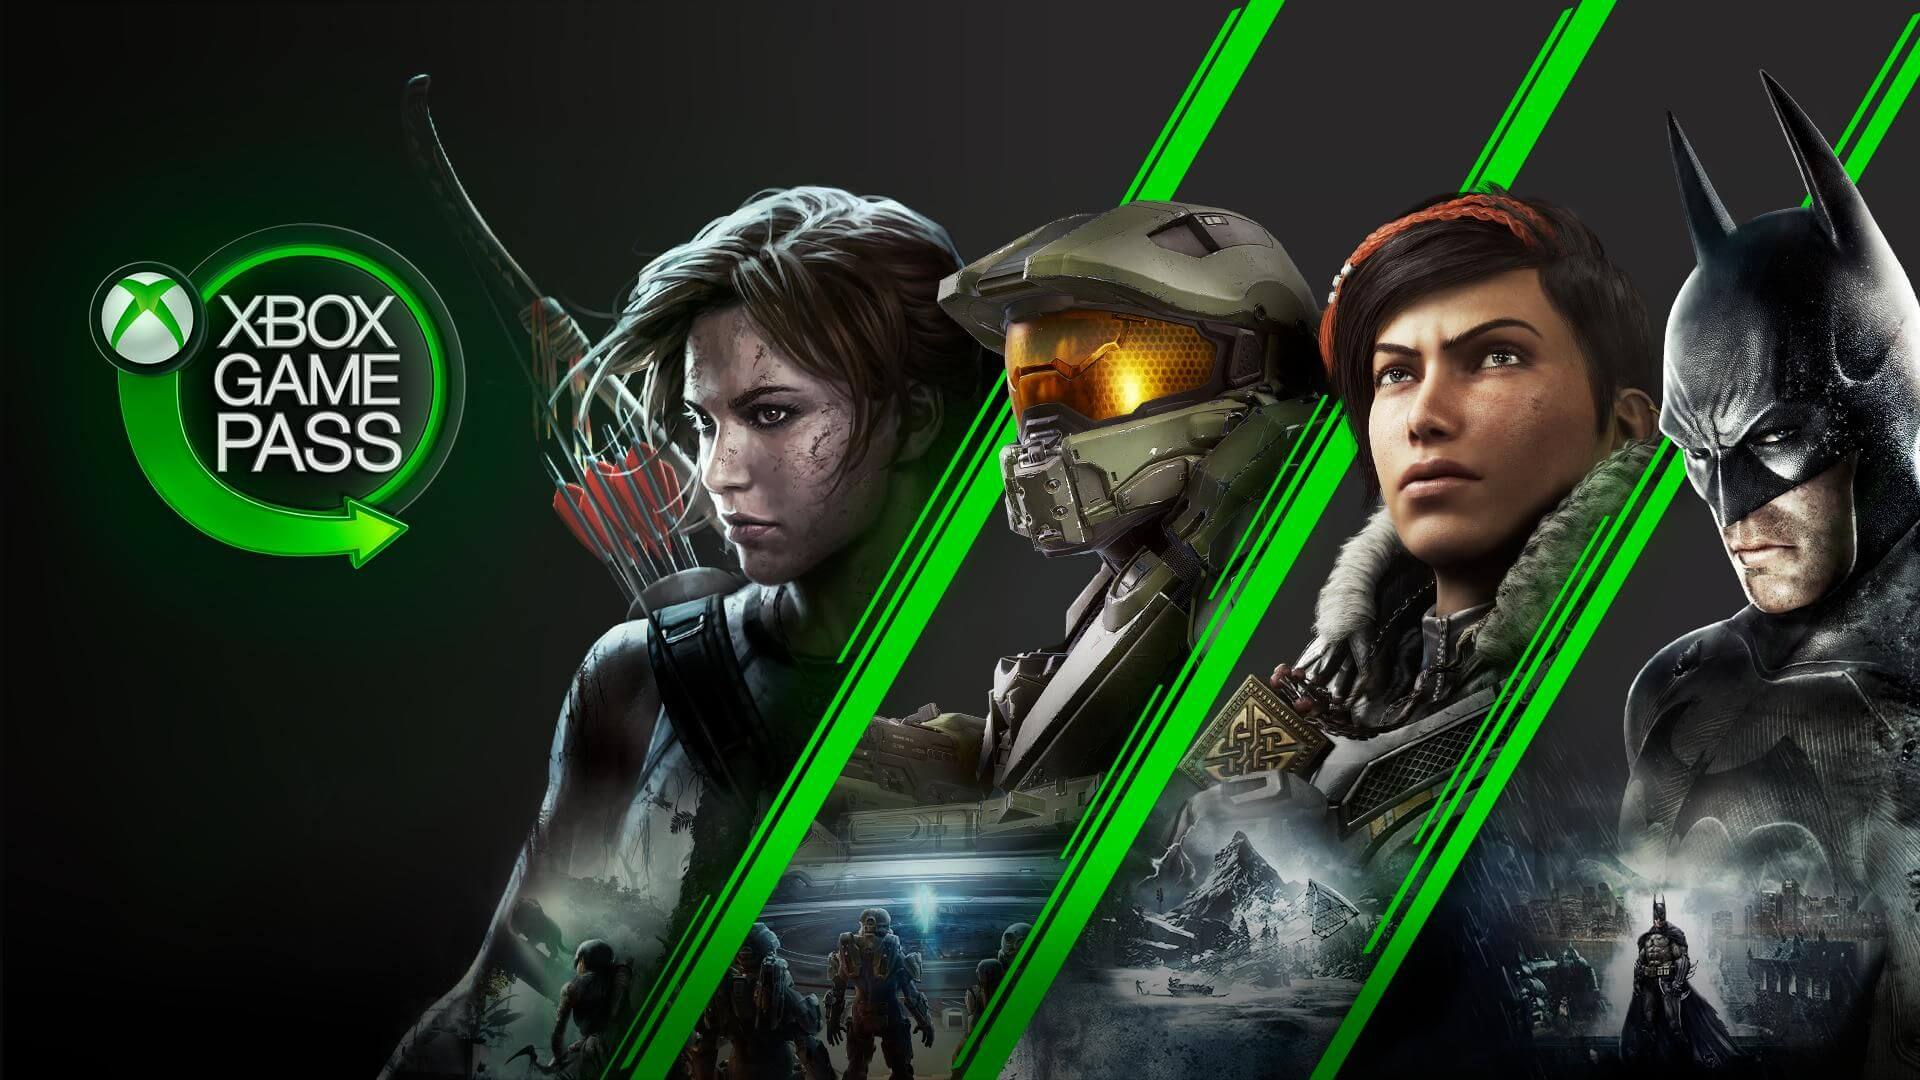 The Best Games to Play on Xbox Game Pass